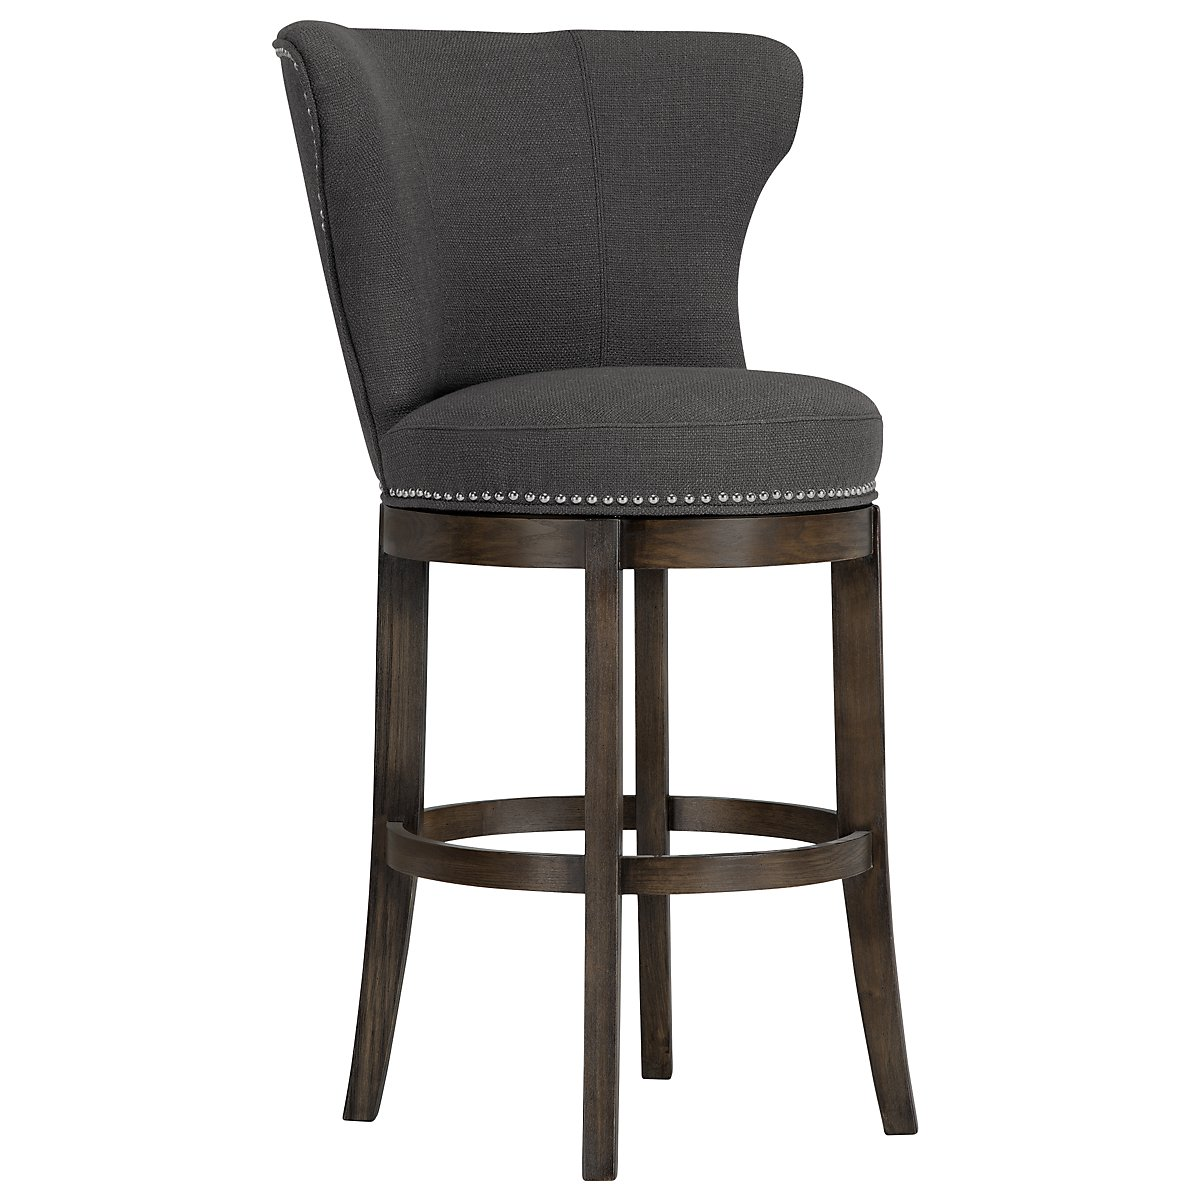 "Cayden Dark Gray Fabric 30"" Swivel Barstool"